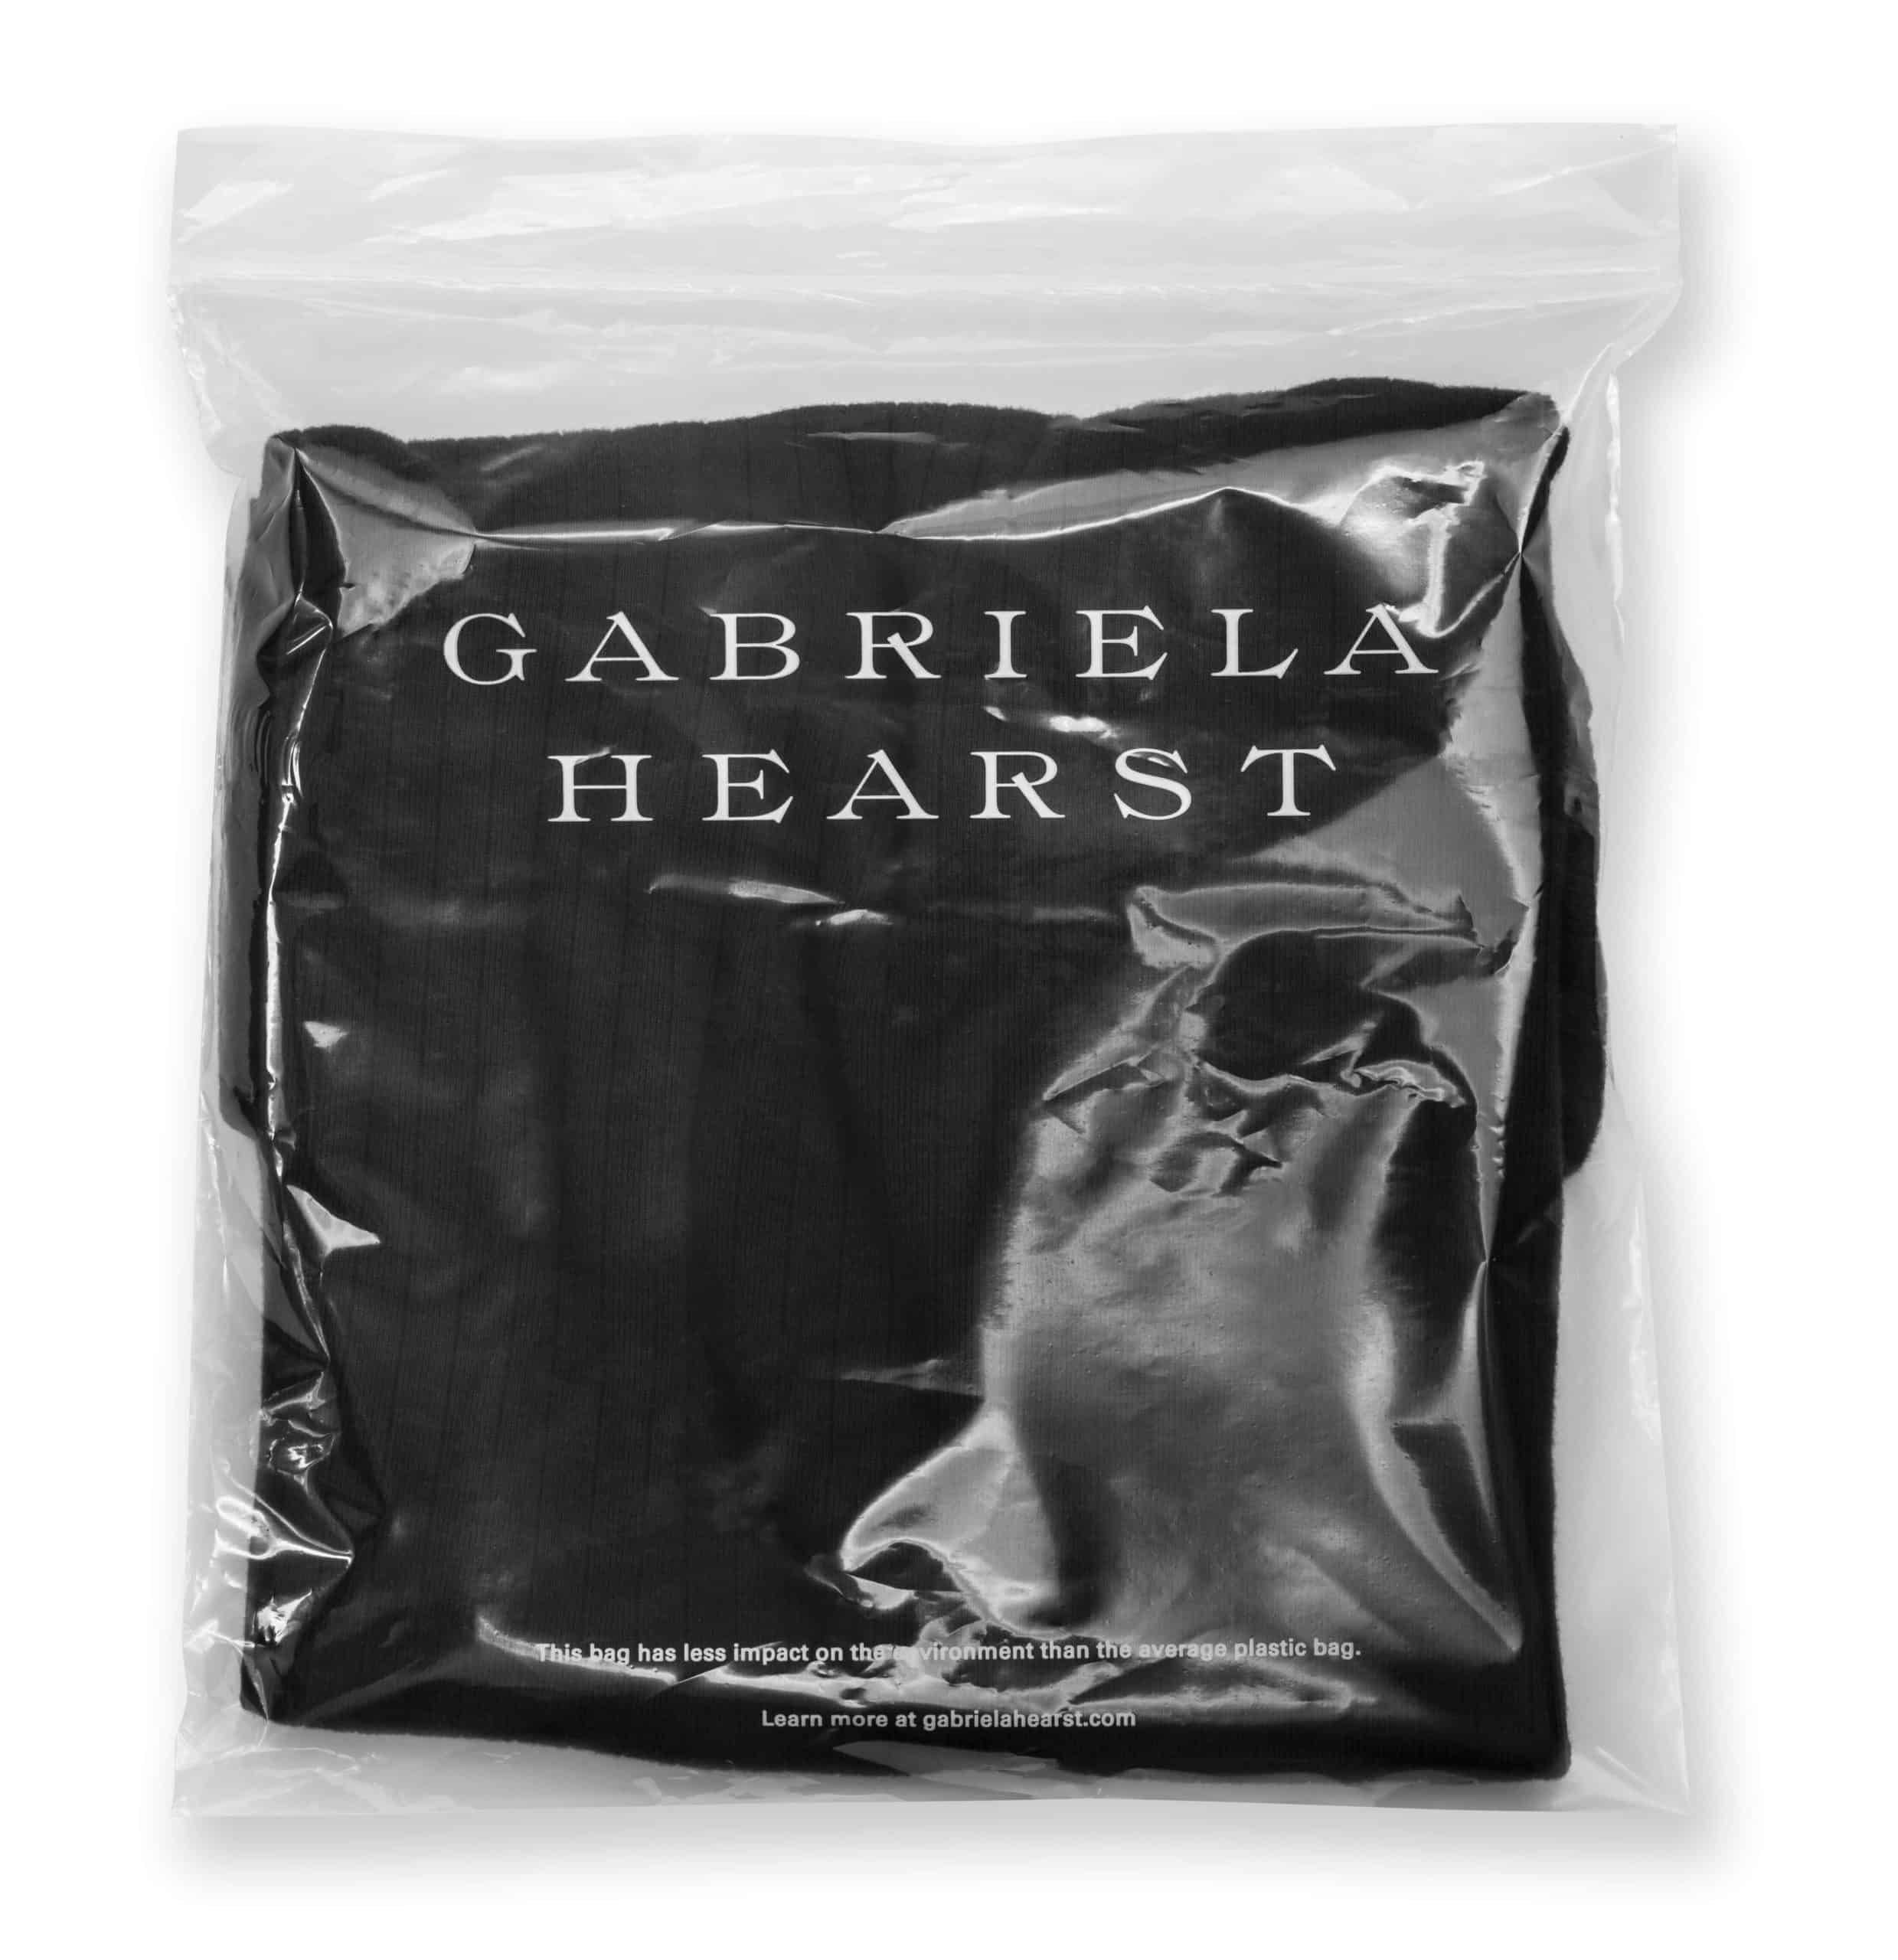 Gabriela Hearst Zipper Bag